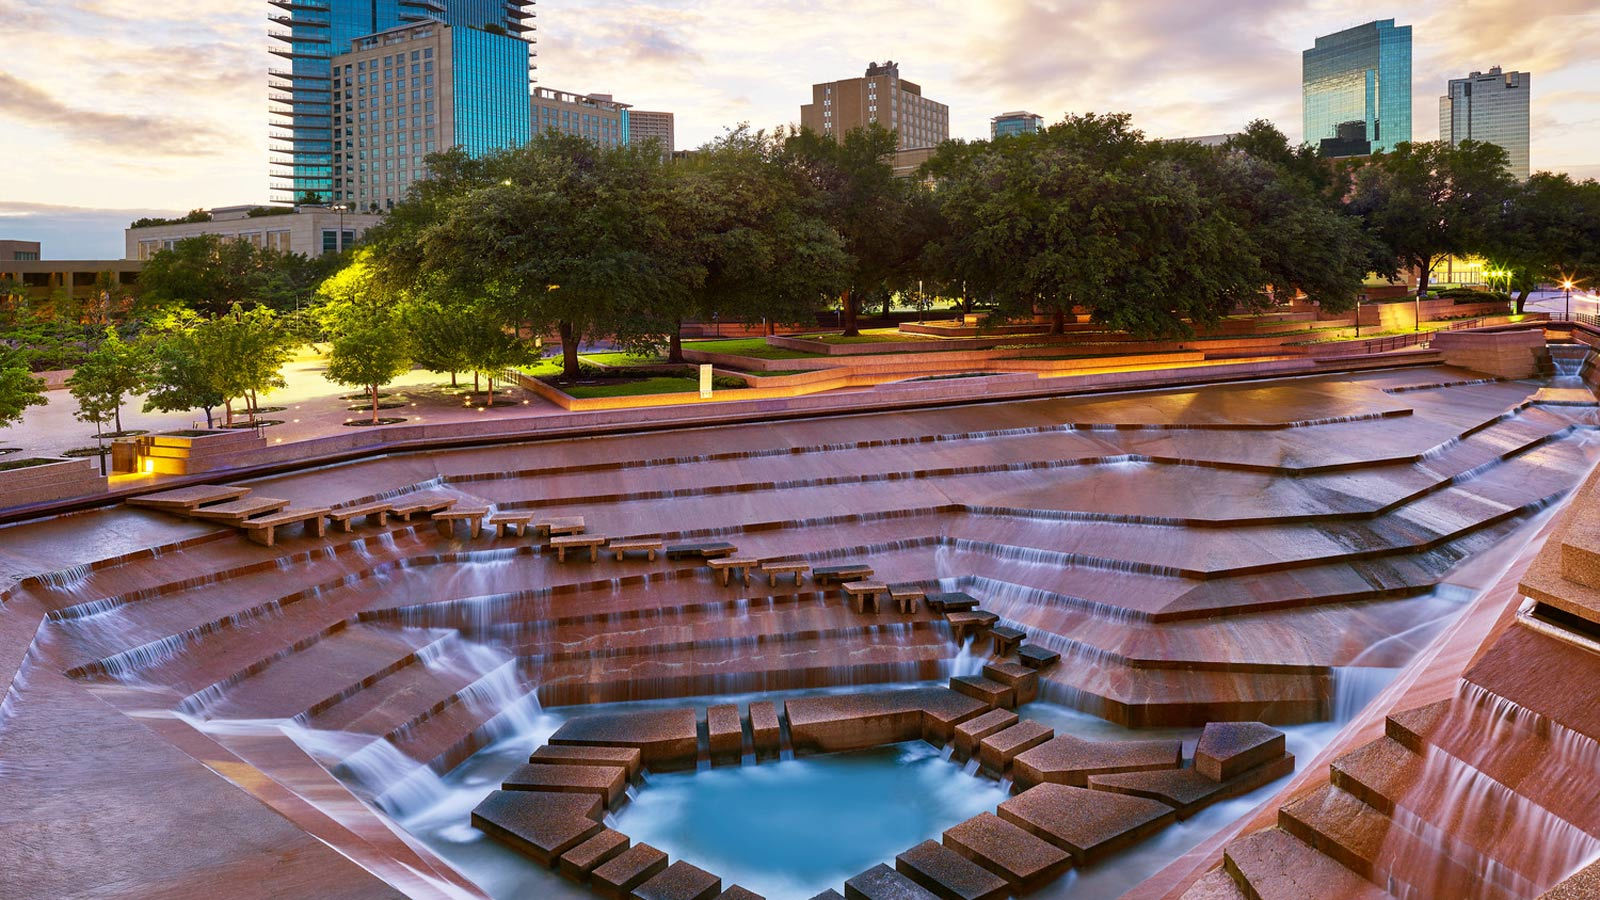 fort worth water gardens - sheraton fort worth downtown hotel ACIXNVK